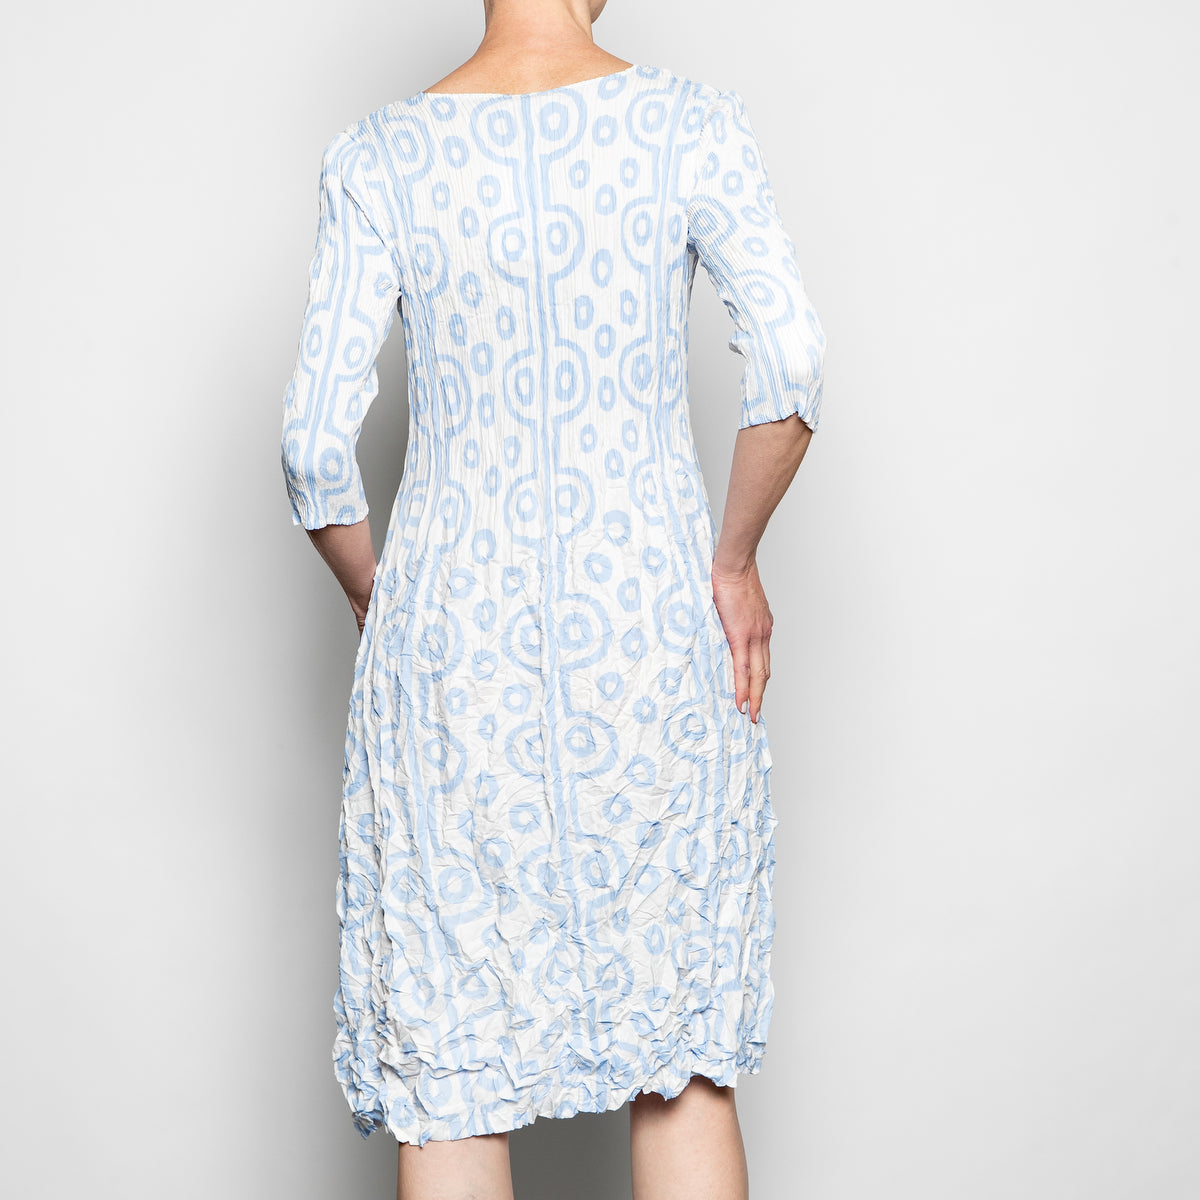 Alquema 3/4 Sleeve Smash Dress in Ivory Cashmere Tribal